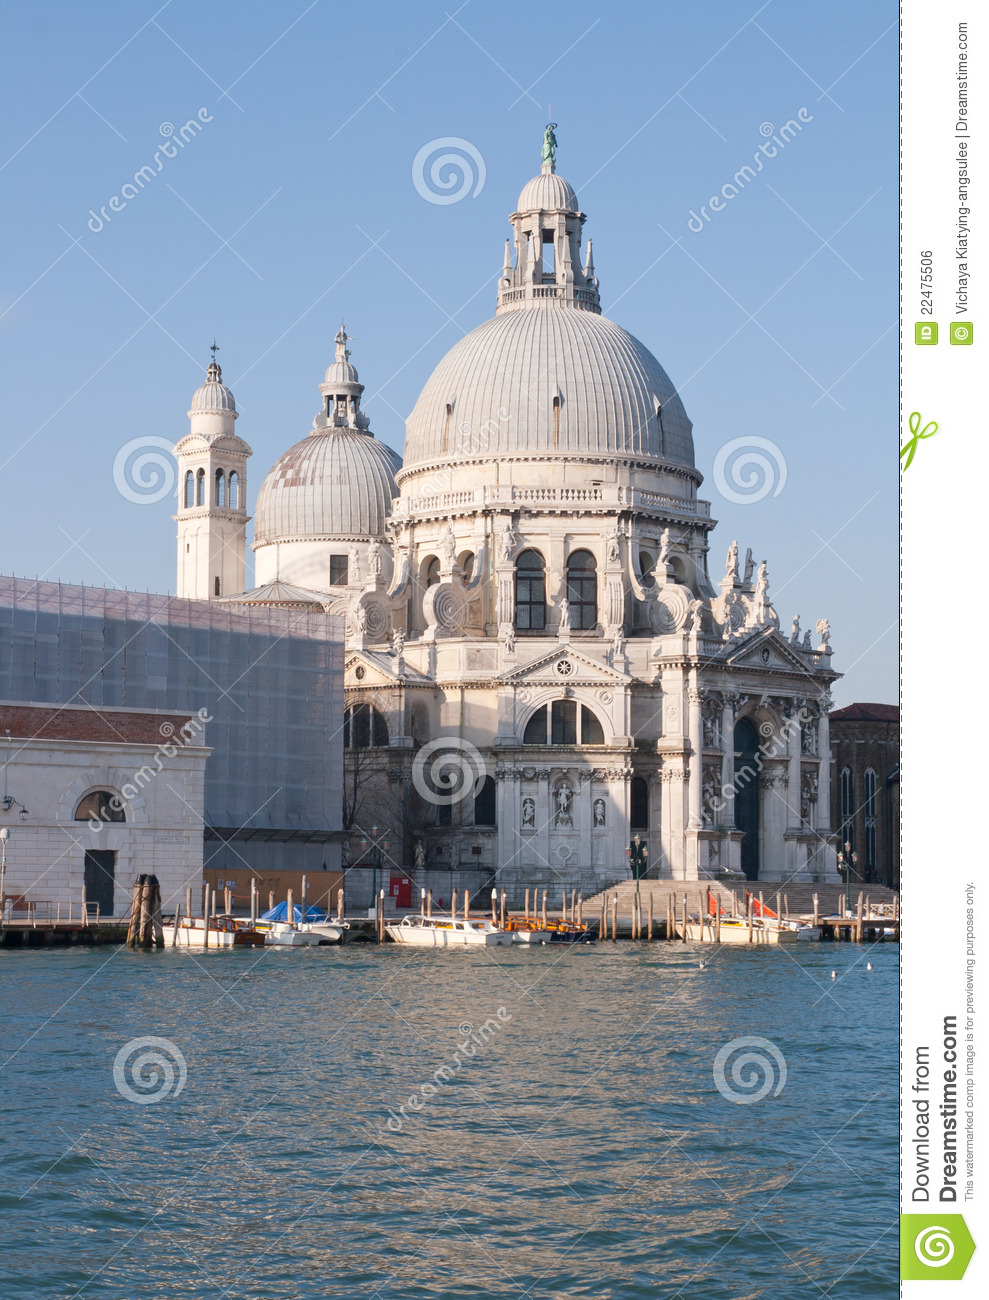 Church At Grand Canal Venice Italy Royalty Free Stock Image - Image ...